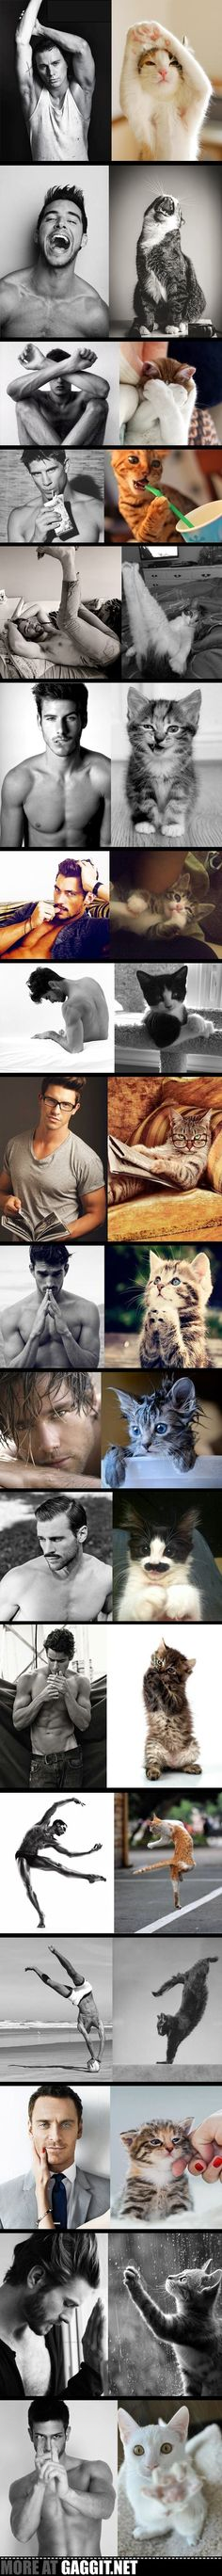 Cats vs men I can't stop laughing!